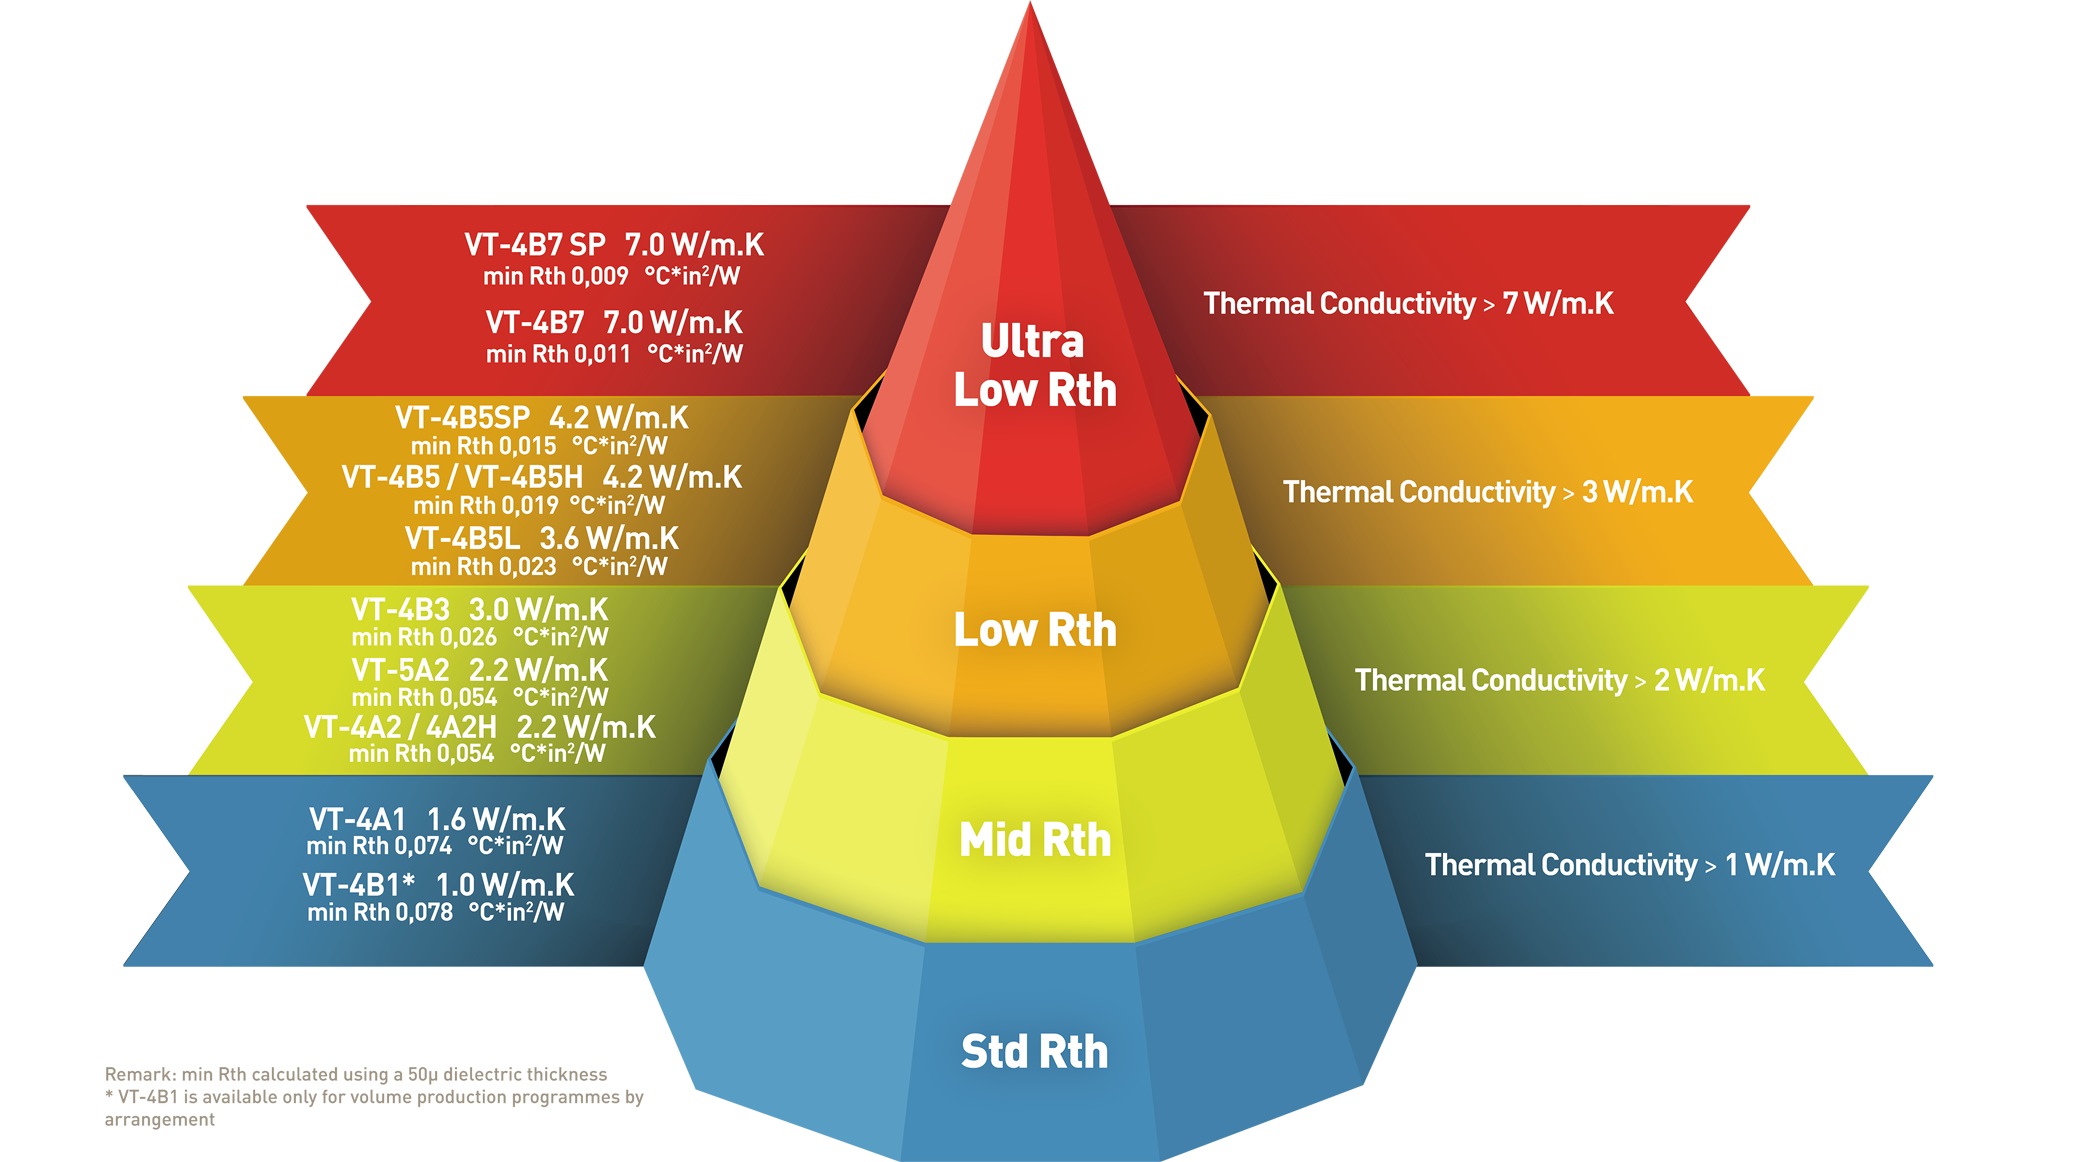 200513Ventec-tec-thermal-pyramid_web.png